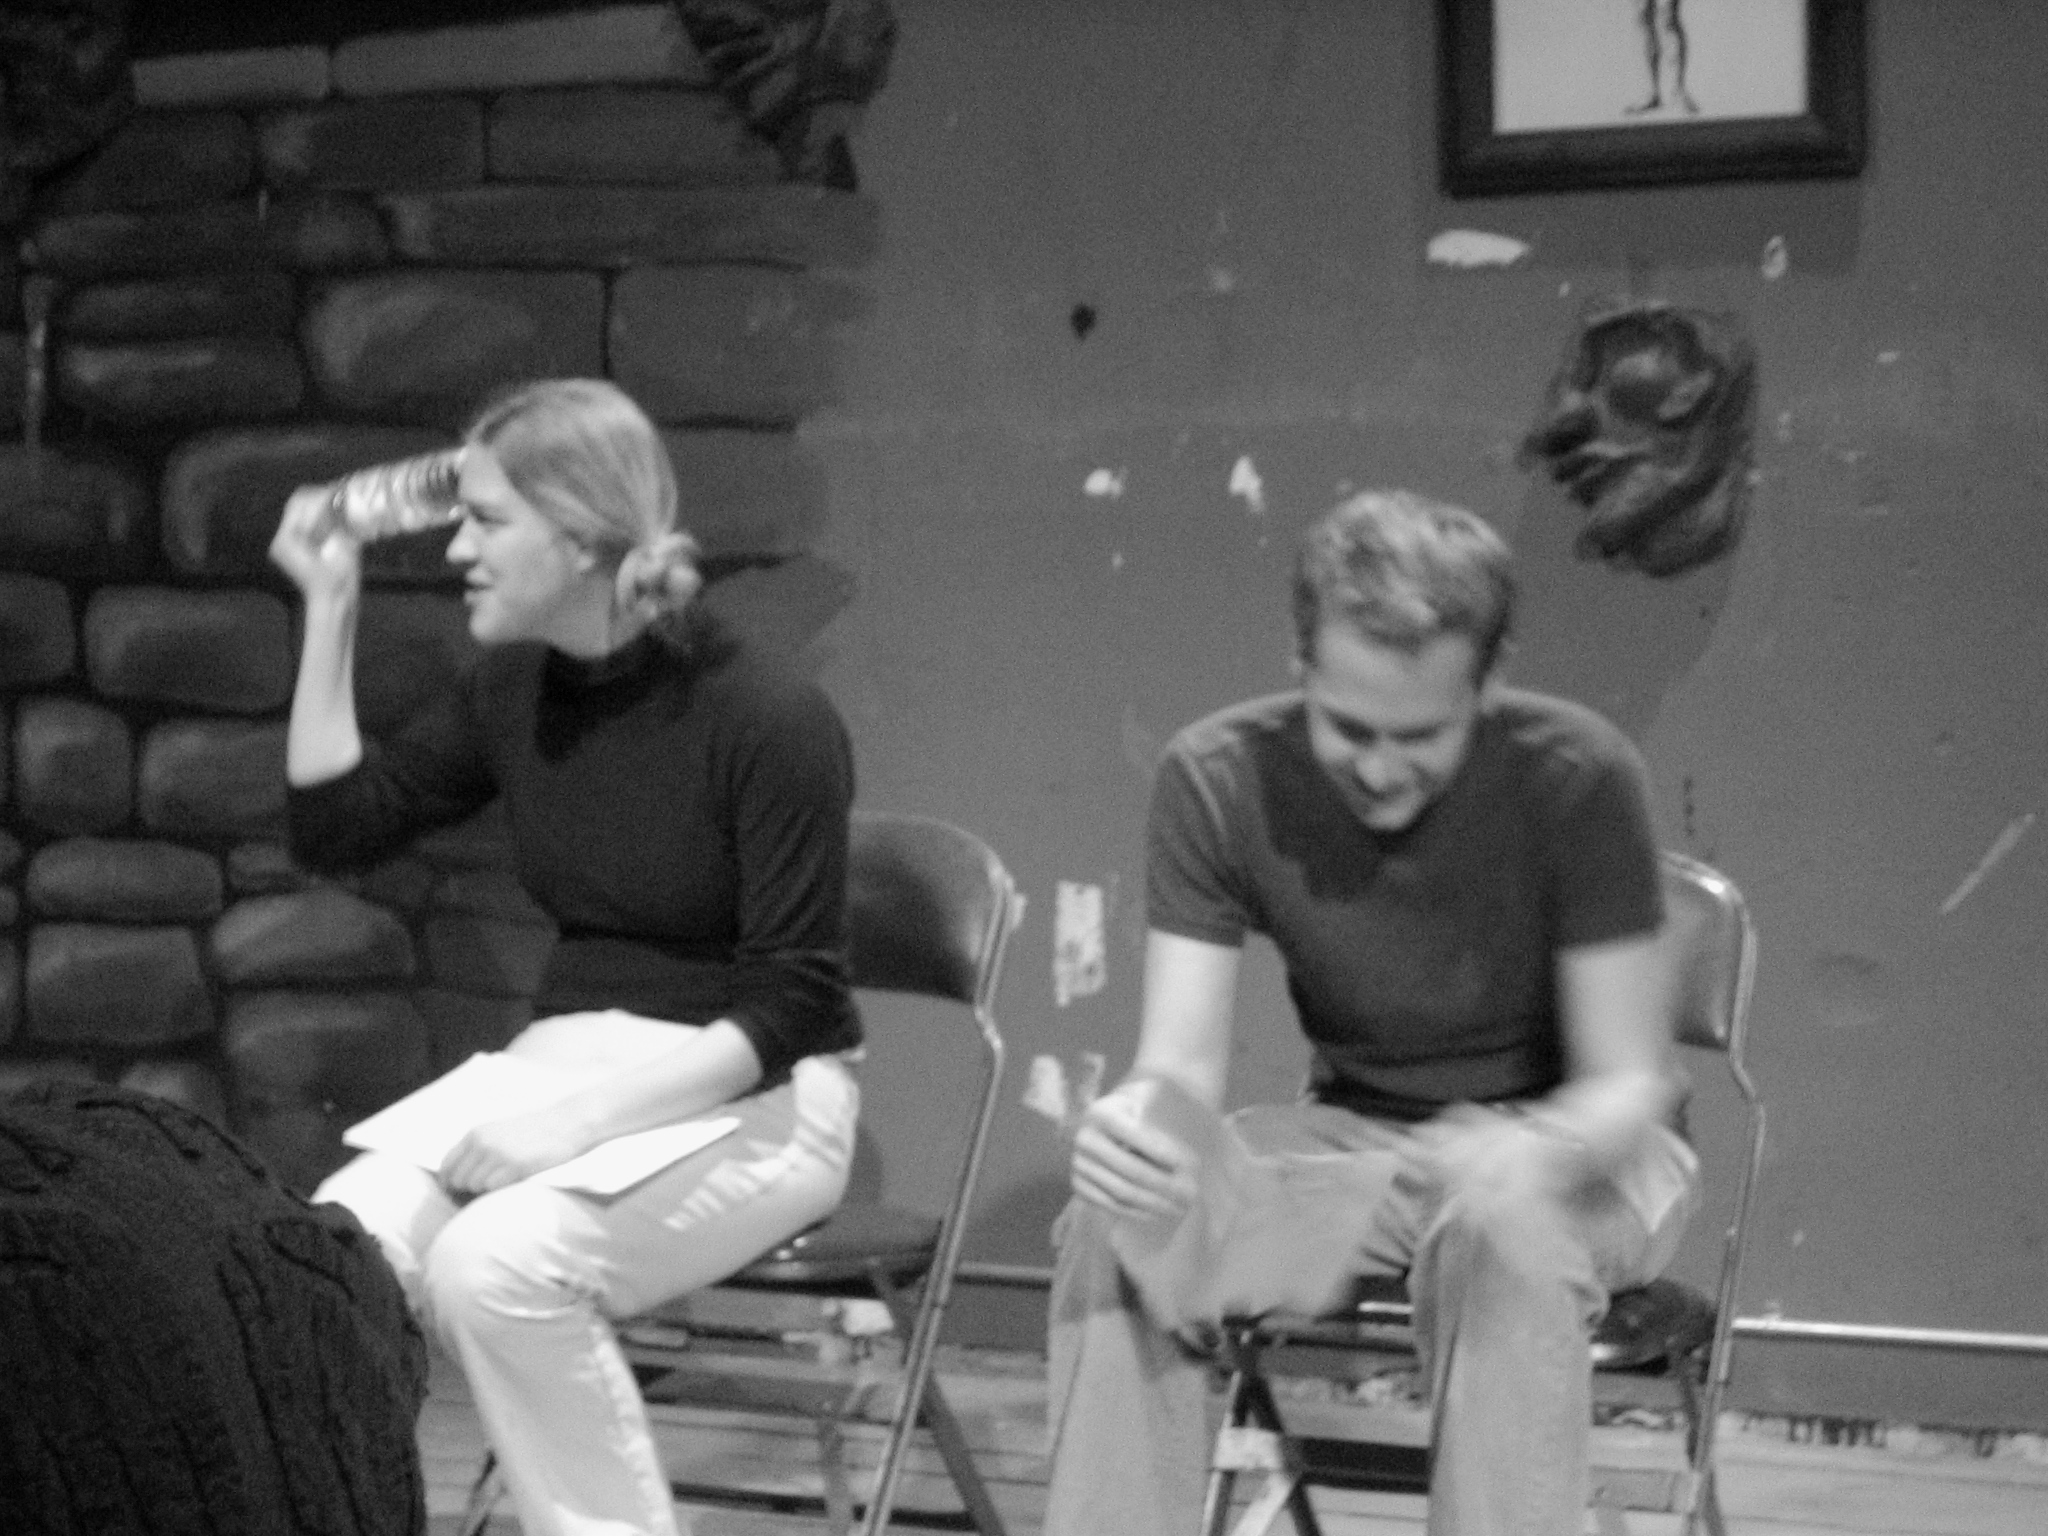 Me and Lott, 2000-ish.We are teaching something, I think? I am hitting myself in the head with a water bottle?